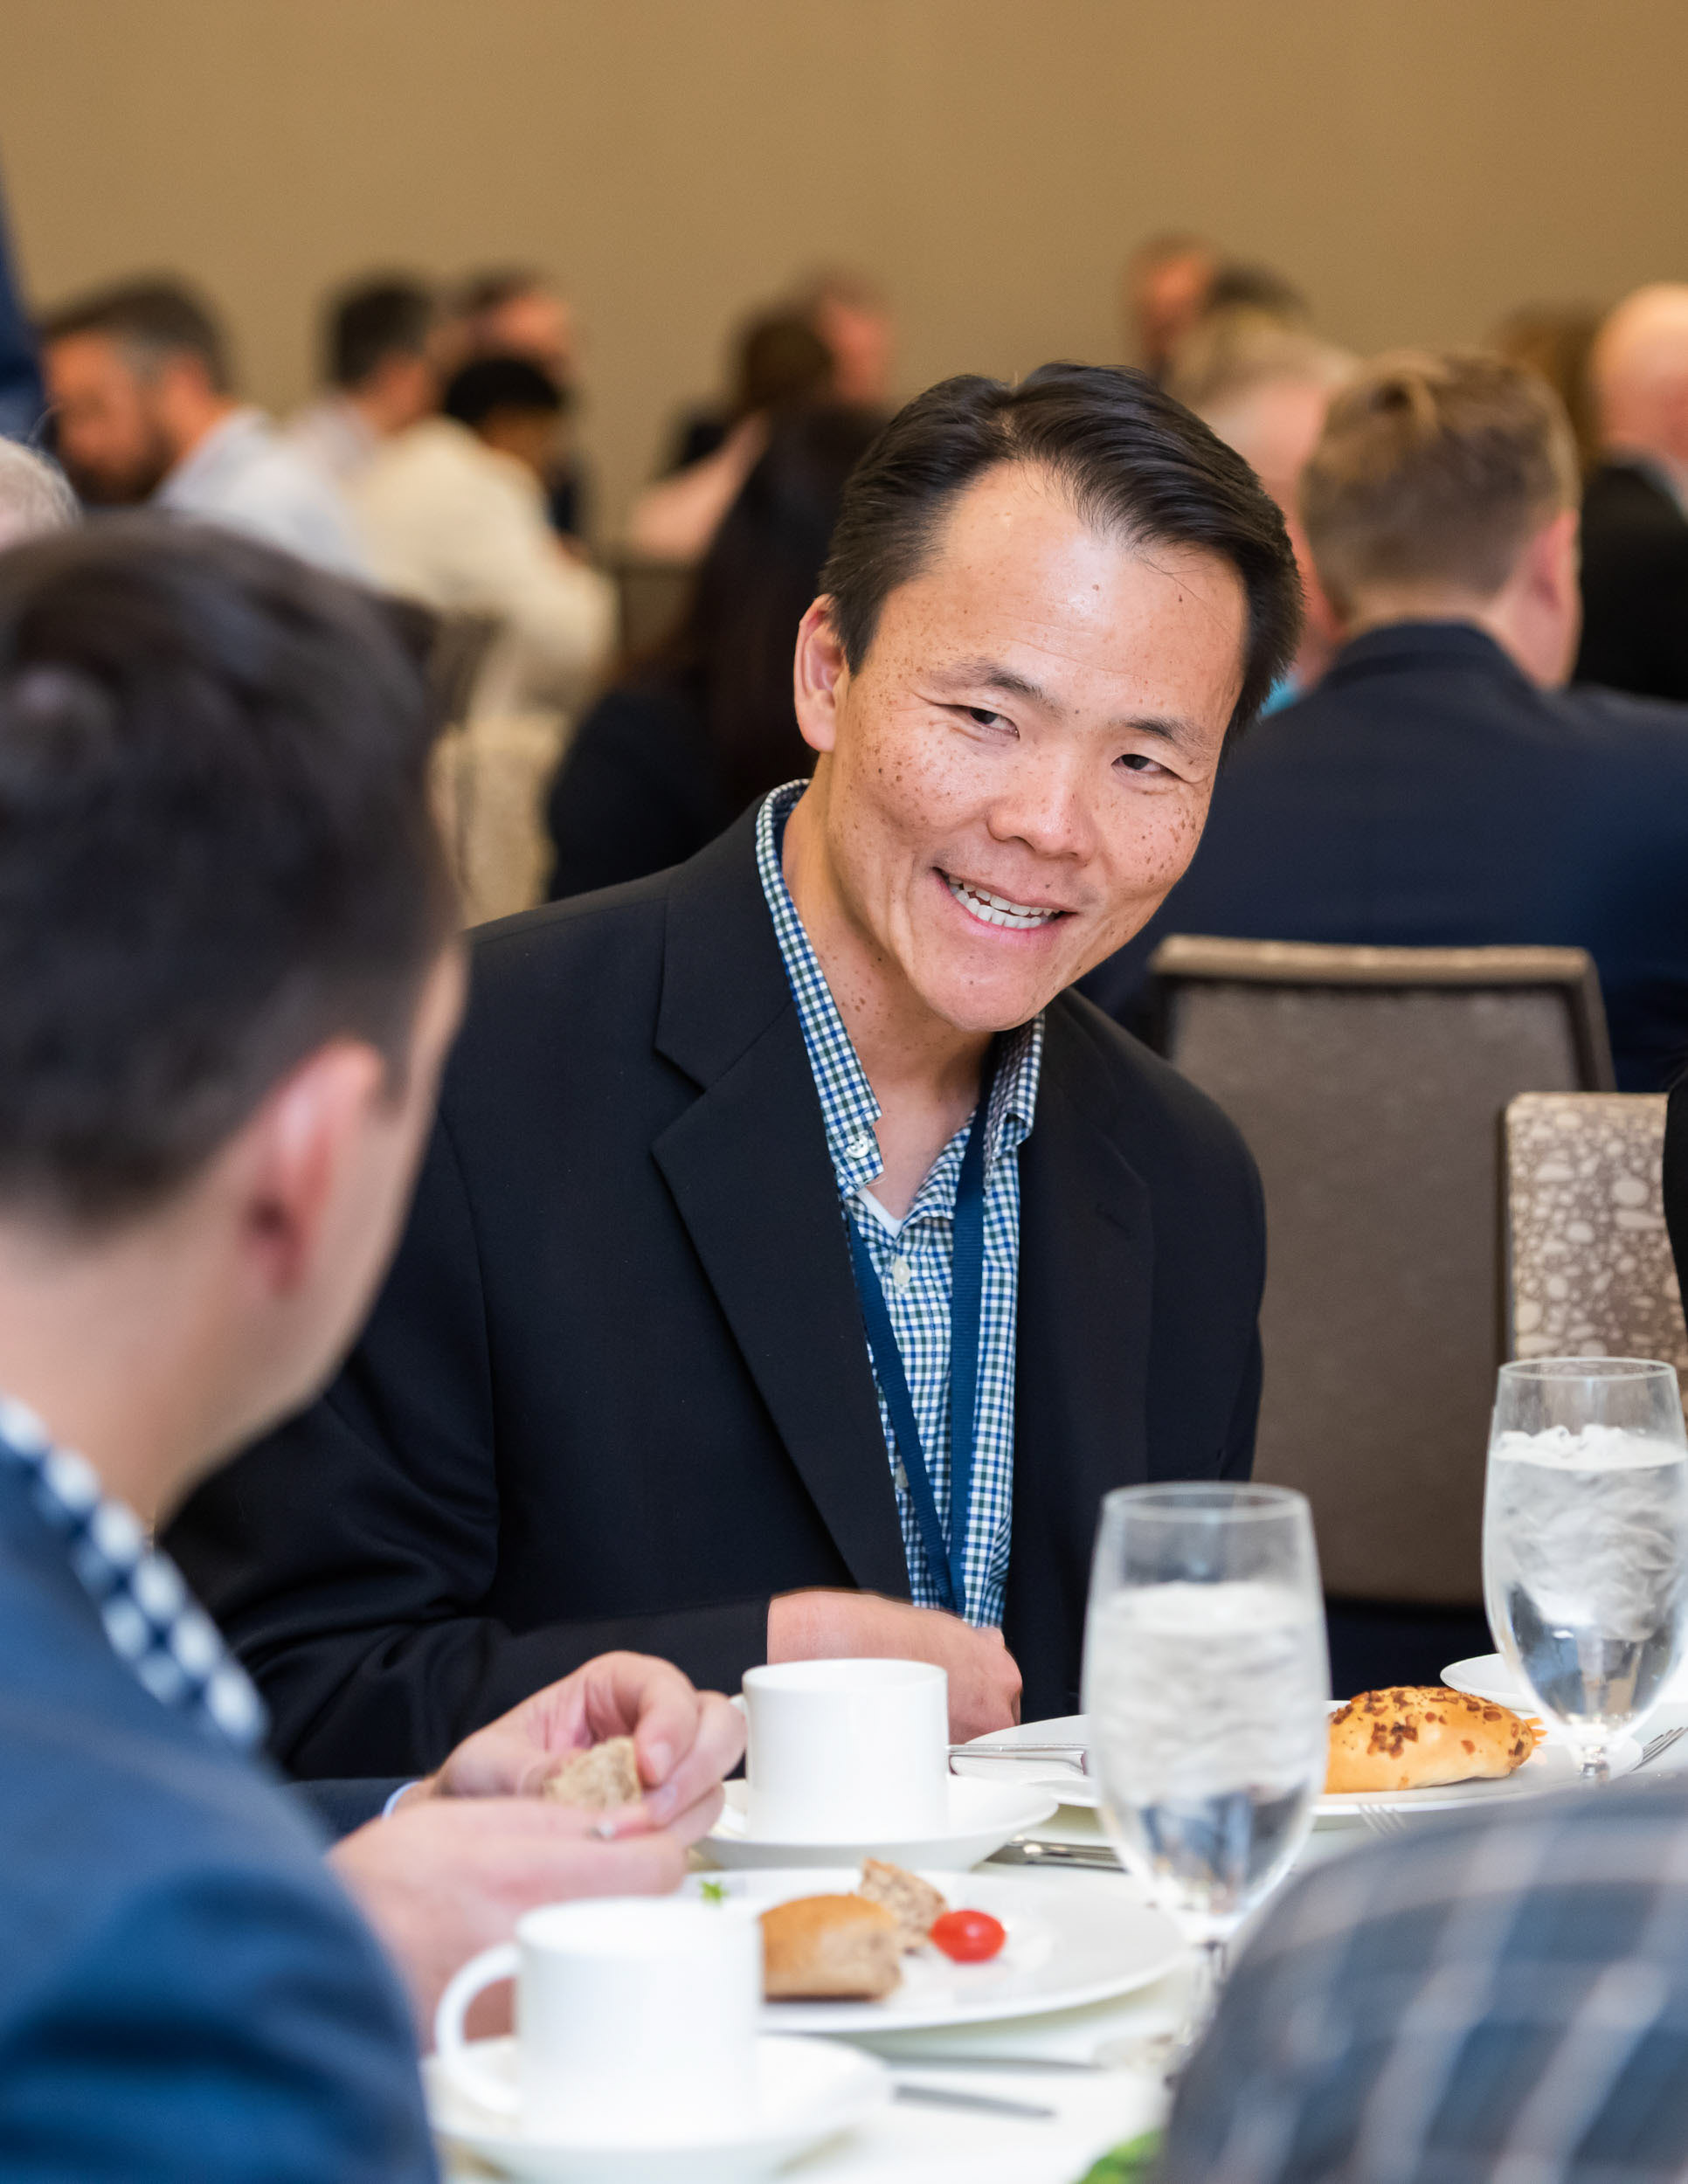 181024 - American Medical Device Summit - mark campbell photography-224_Resized_Resized.jpg